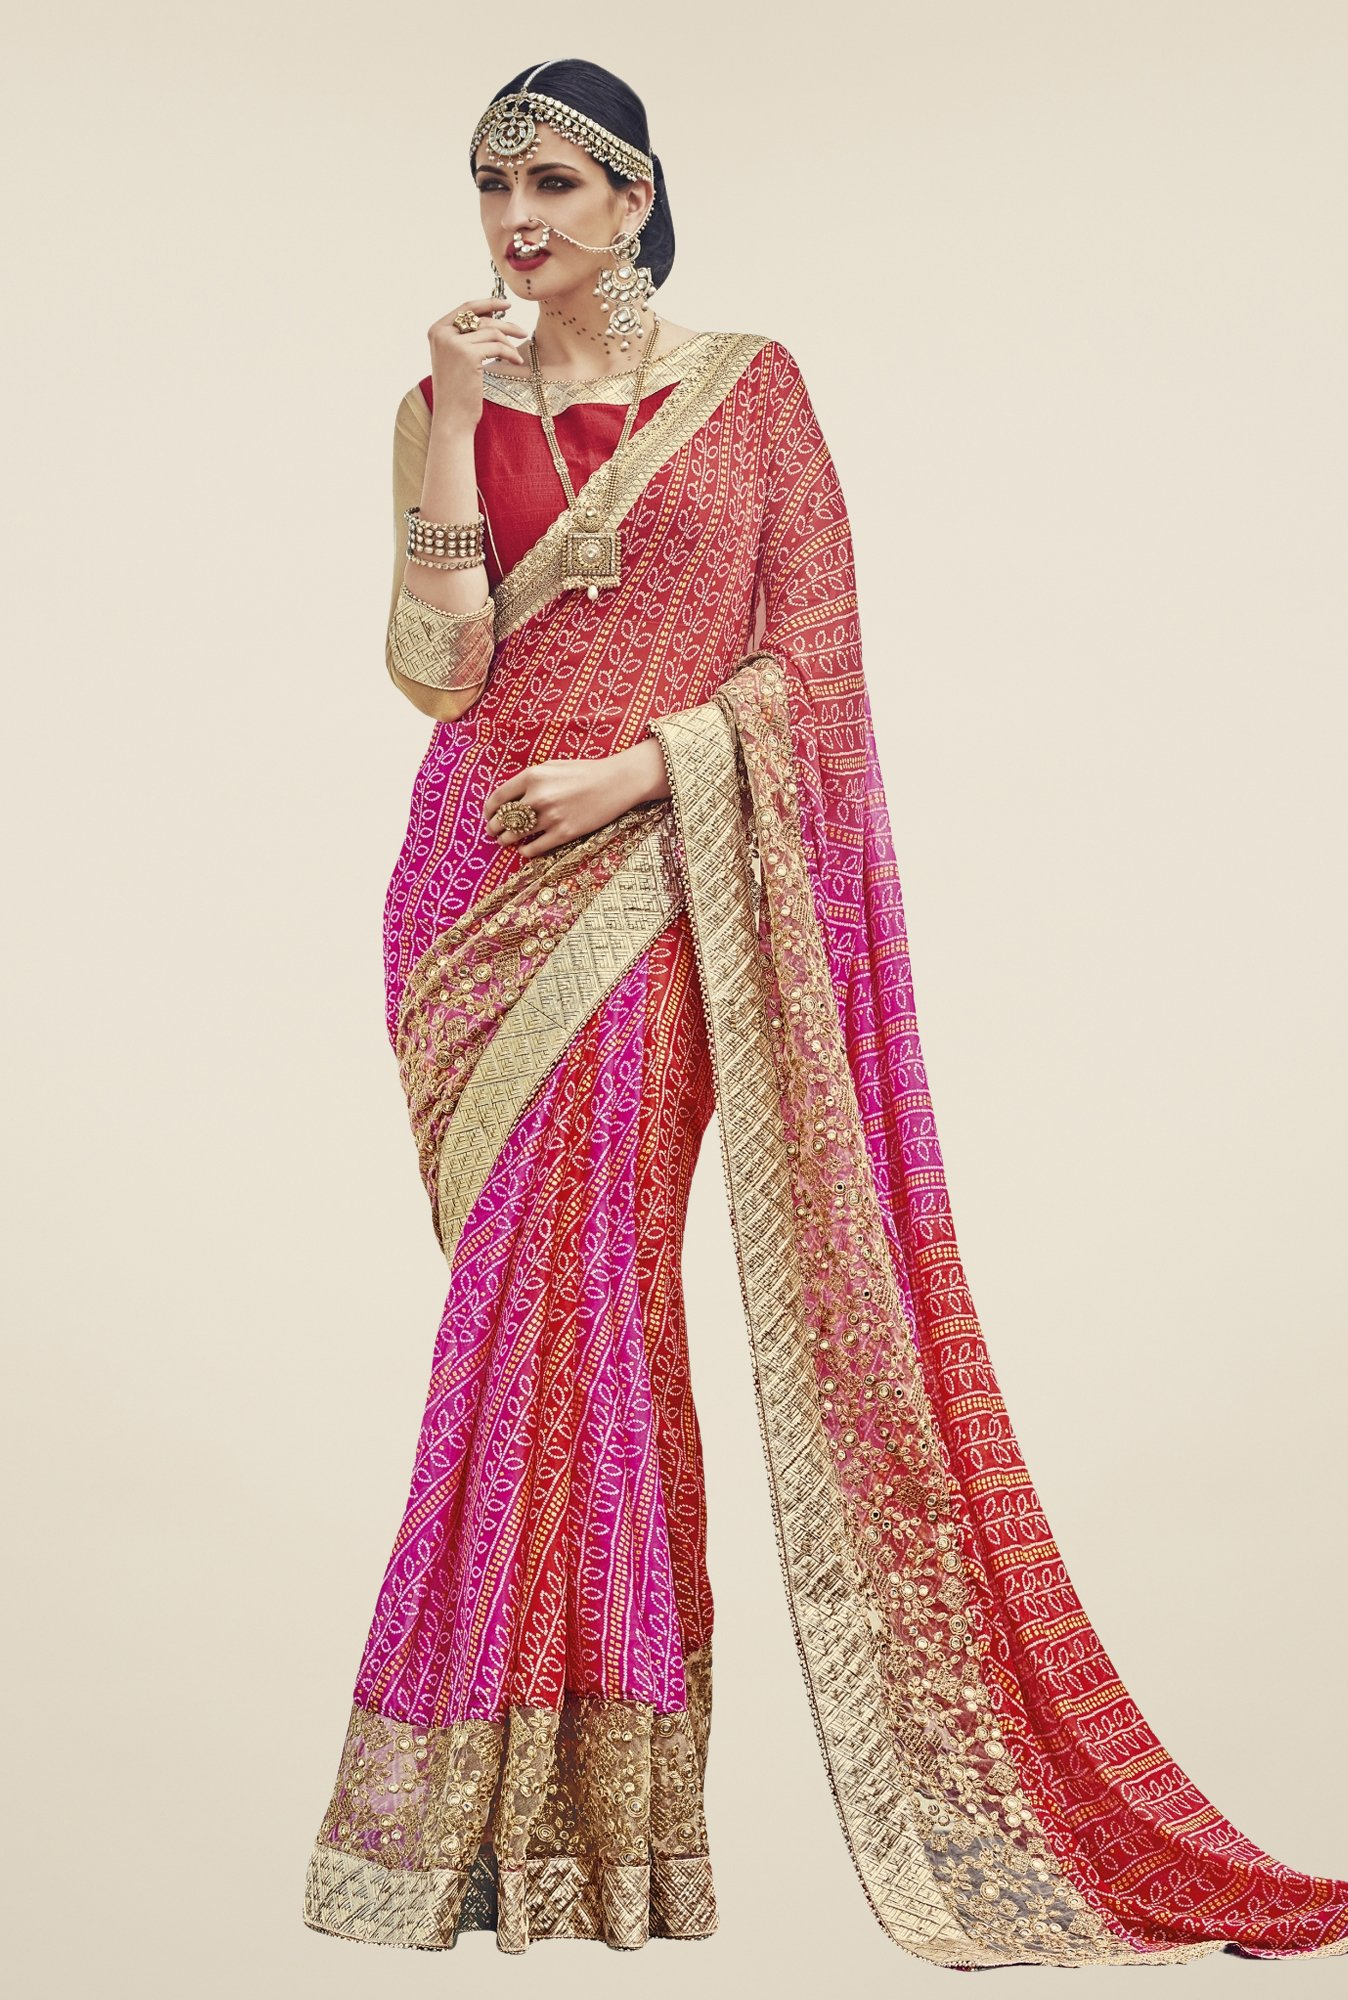 Triveni Pink & Red Bandhani Faux Georgette Saree